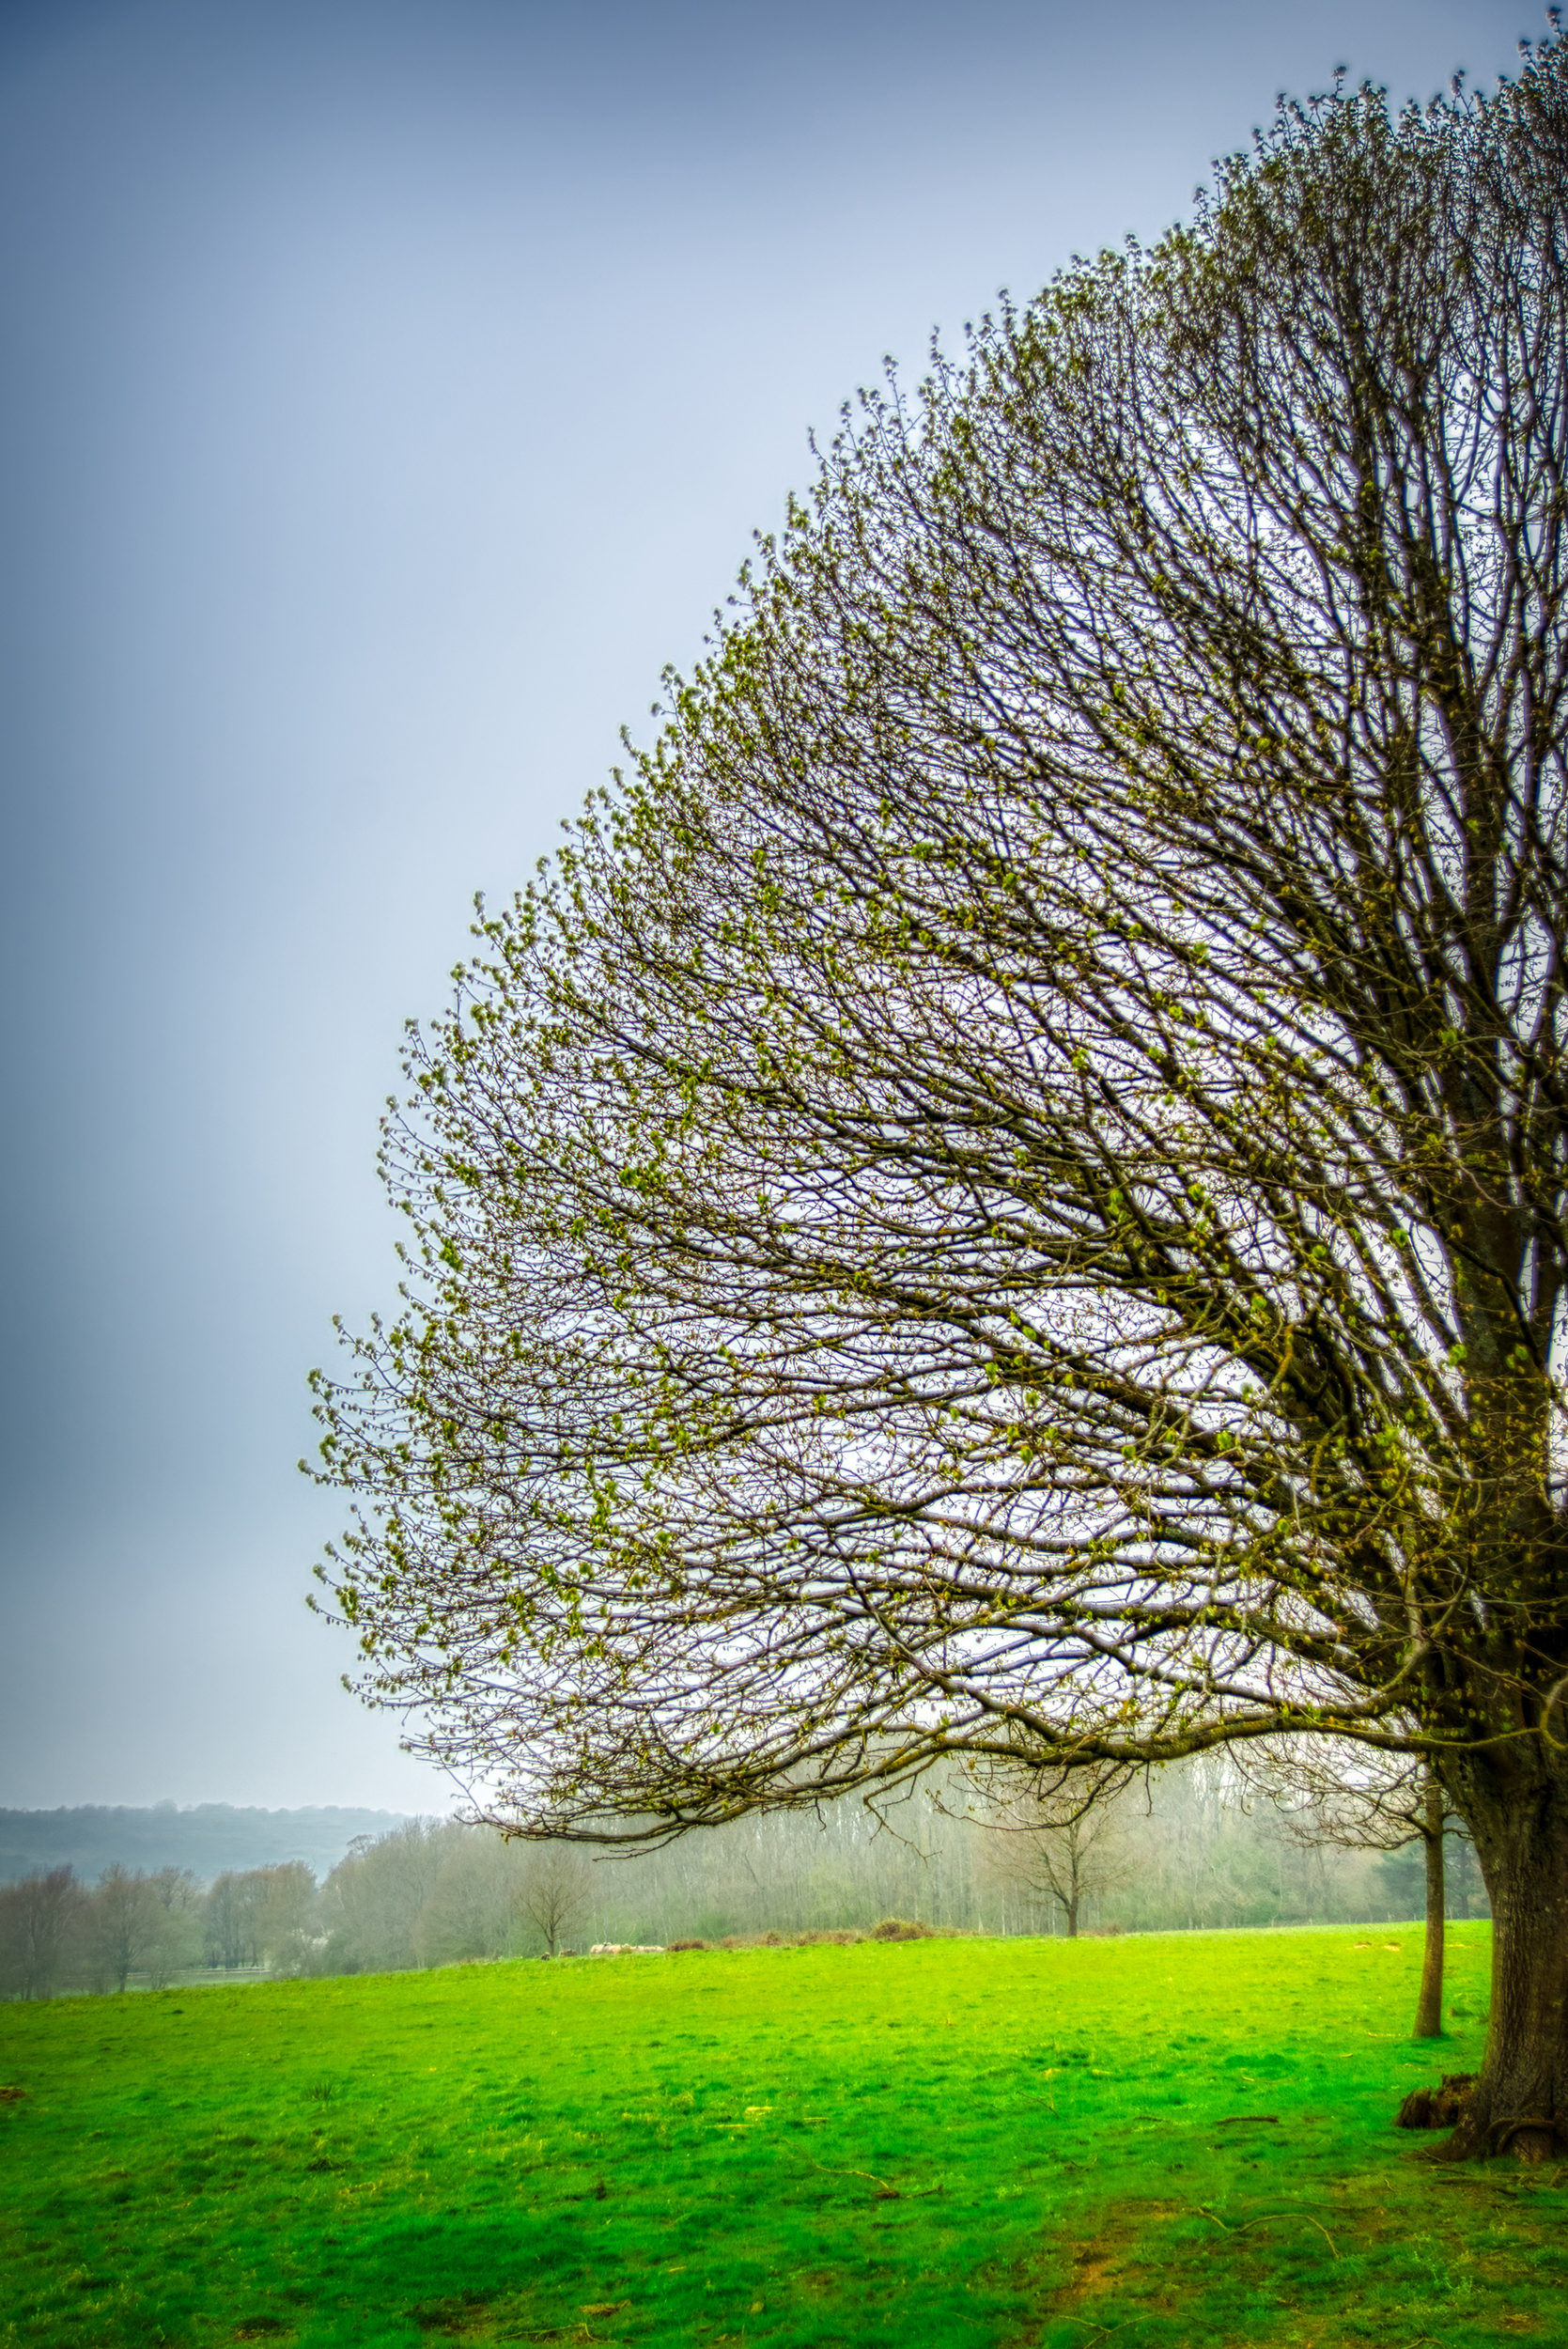 A Lonely Tree at Sheffield Park    📷 PHOTO INFORMATION    DATE TAKEN  2019-04-07 11:47:44   CAMERA  D610   CAMERA MAKE  NIKON   EXPOSURE TIME  1/800   APERTURE  F/3.5   ISO  125   FOCAL LENGTH  38MM